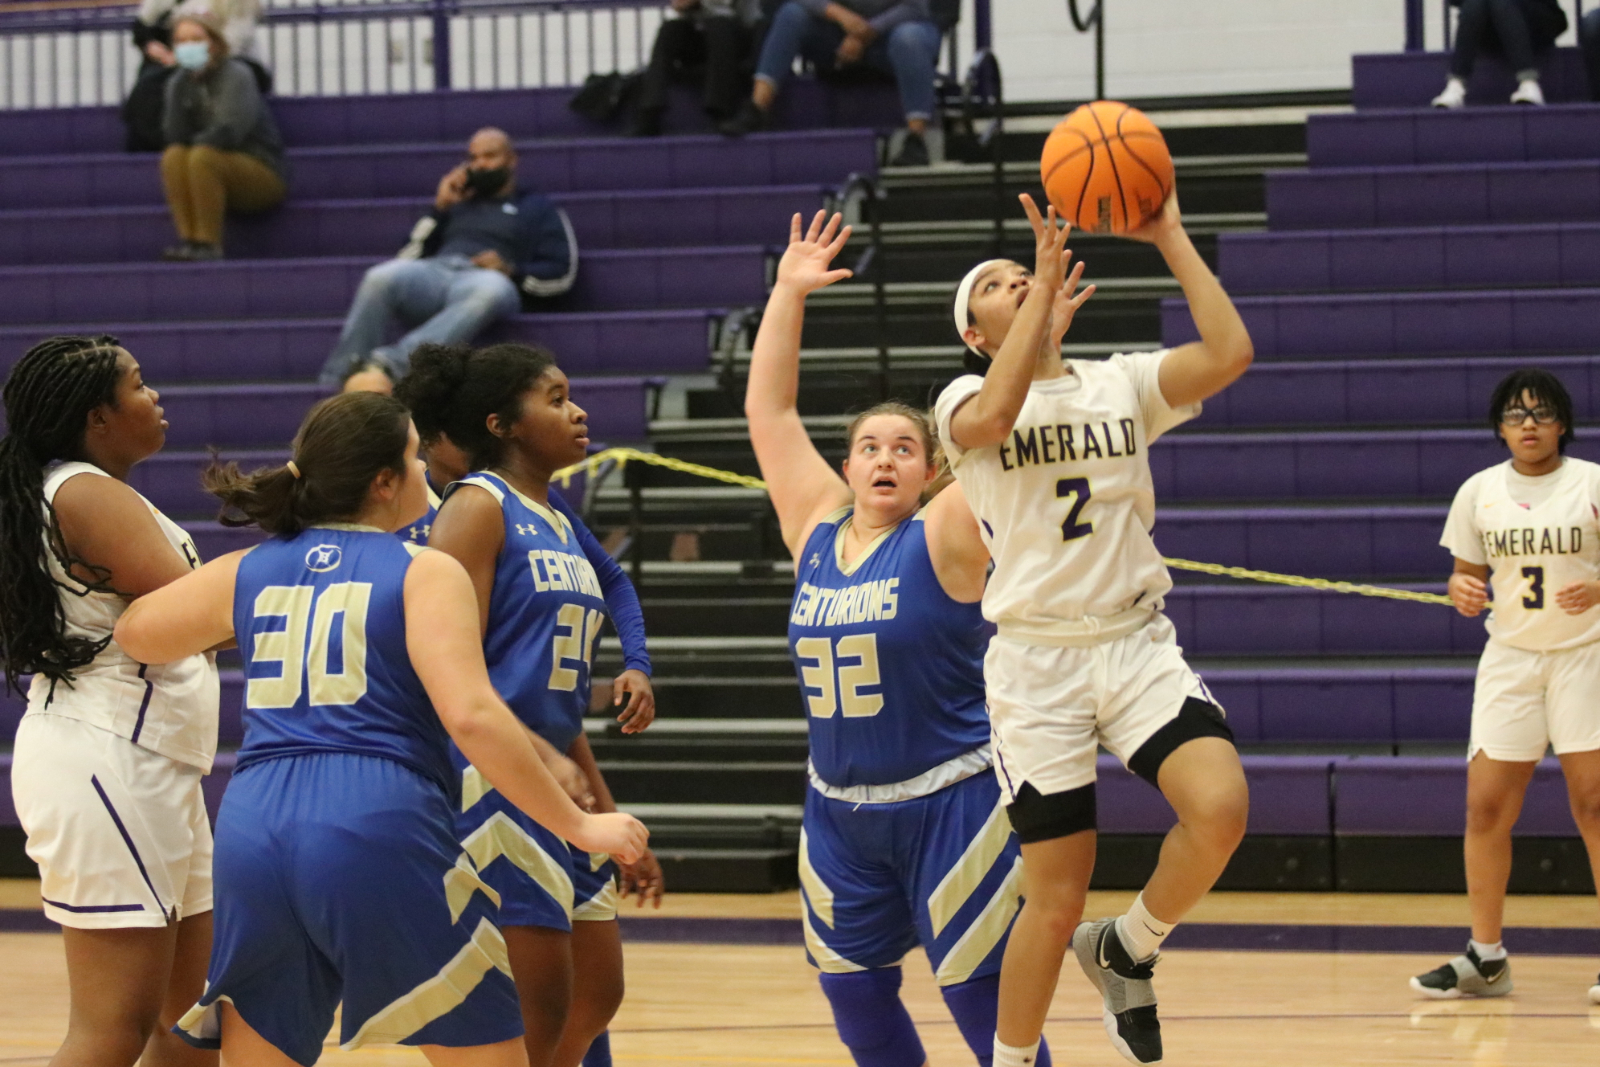 Girls Basketball vs Broome (01.26.2021)